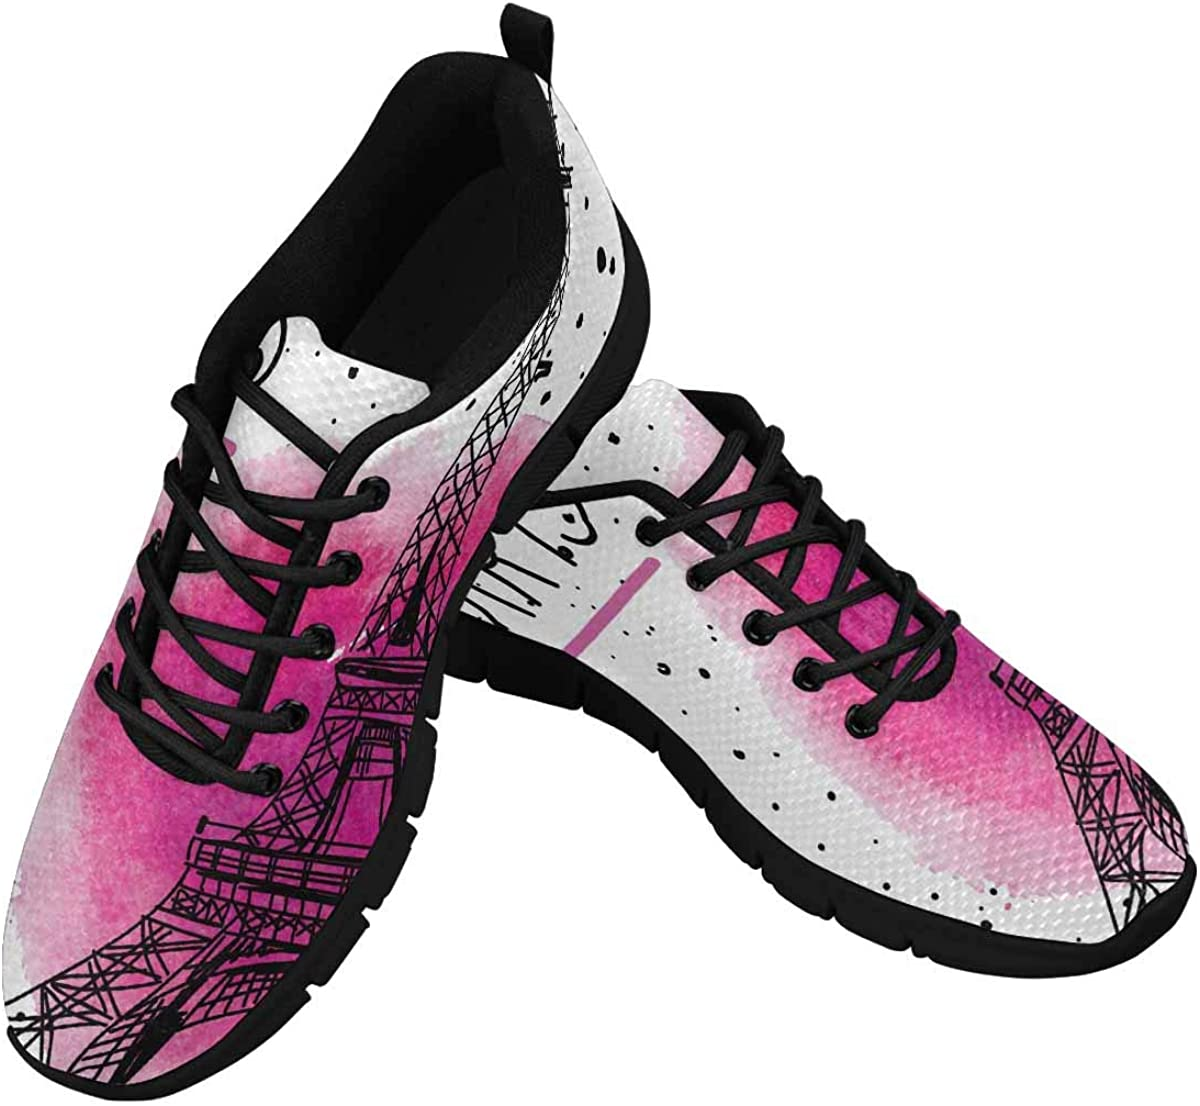 INTERESTPRINT I Love Paris Eiffel Tower France Women's Lightweight Athletic Casual Gym Sneakers